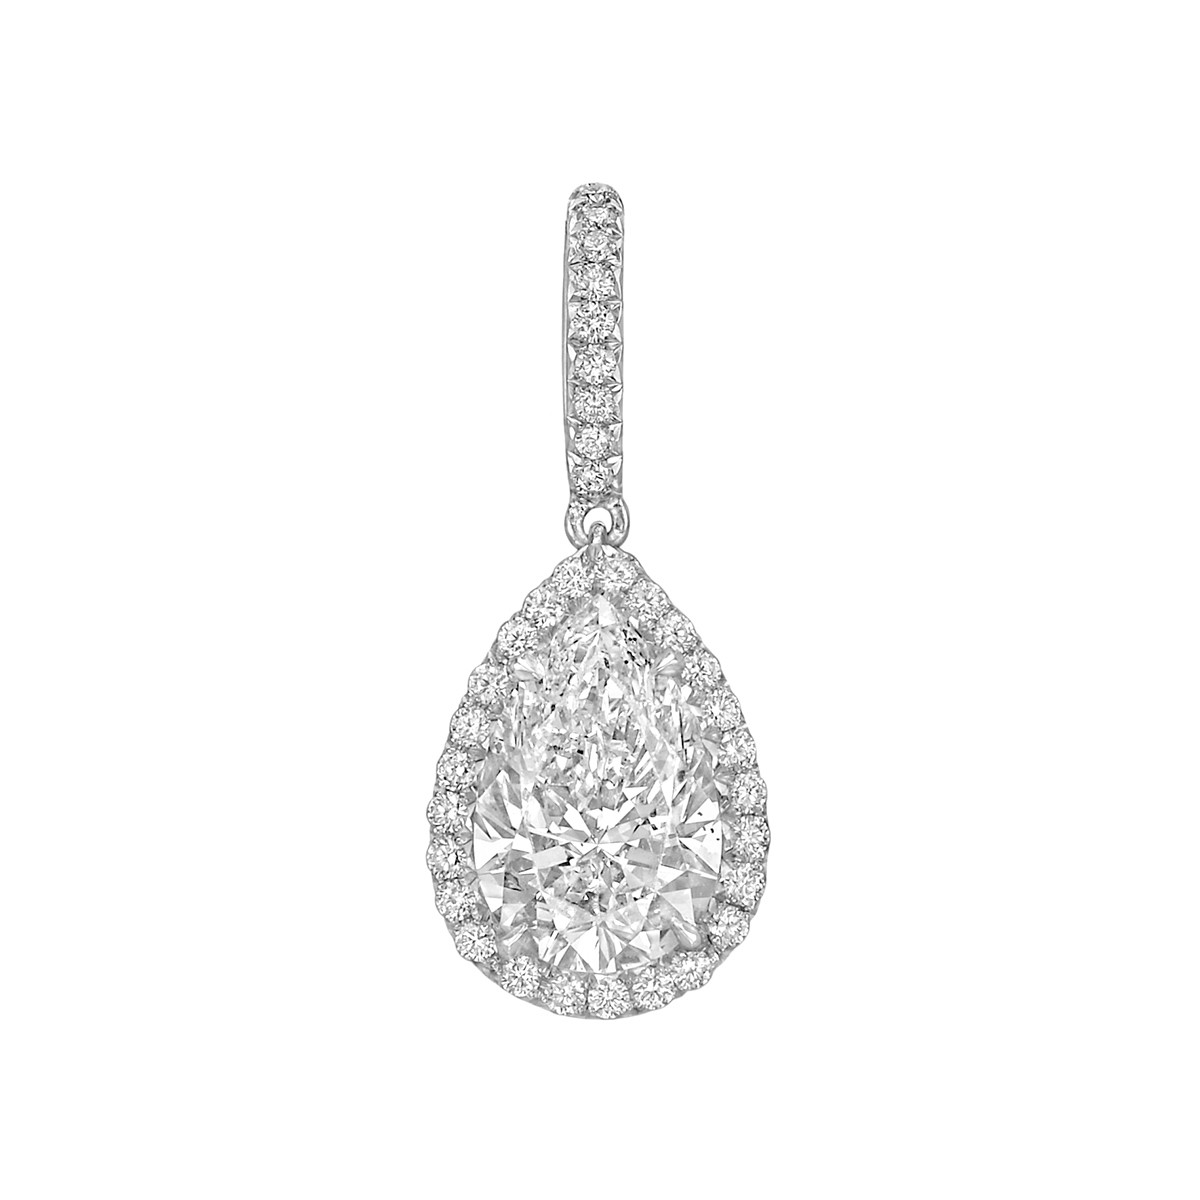 "3.01 Carat Pear Brilliant Diamond ""Oriana"" Pendant"